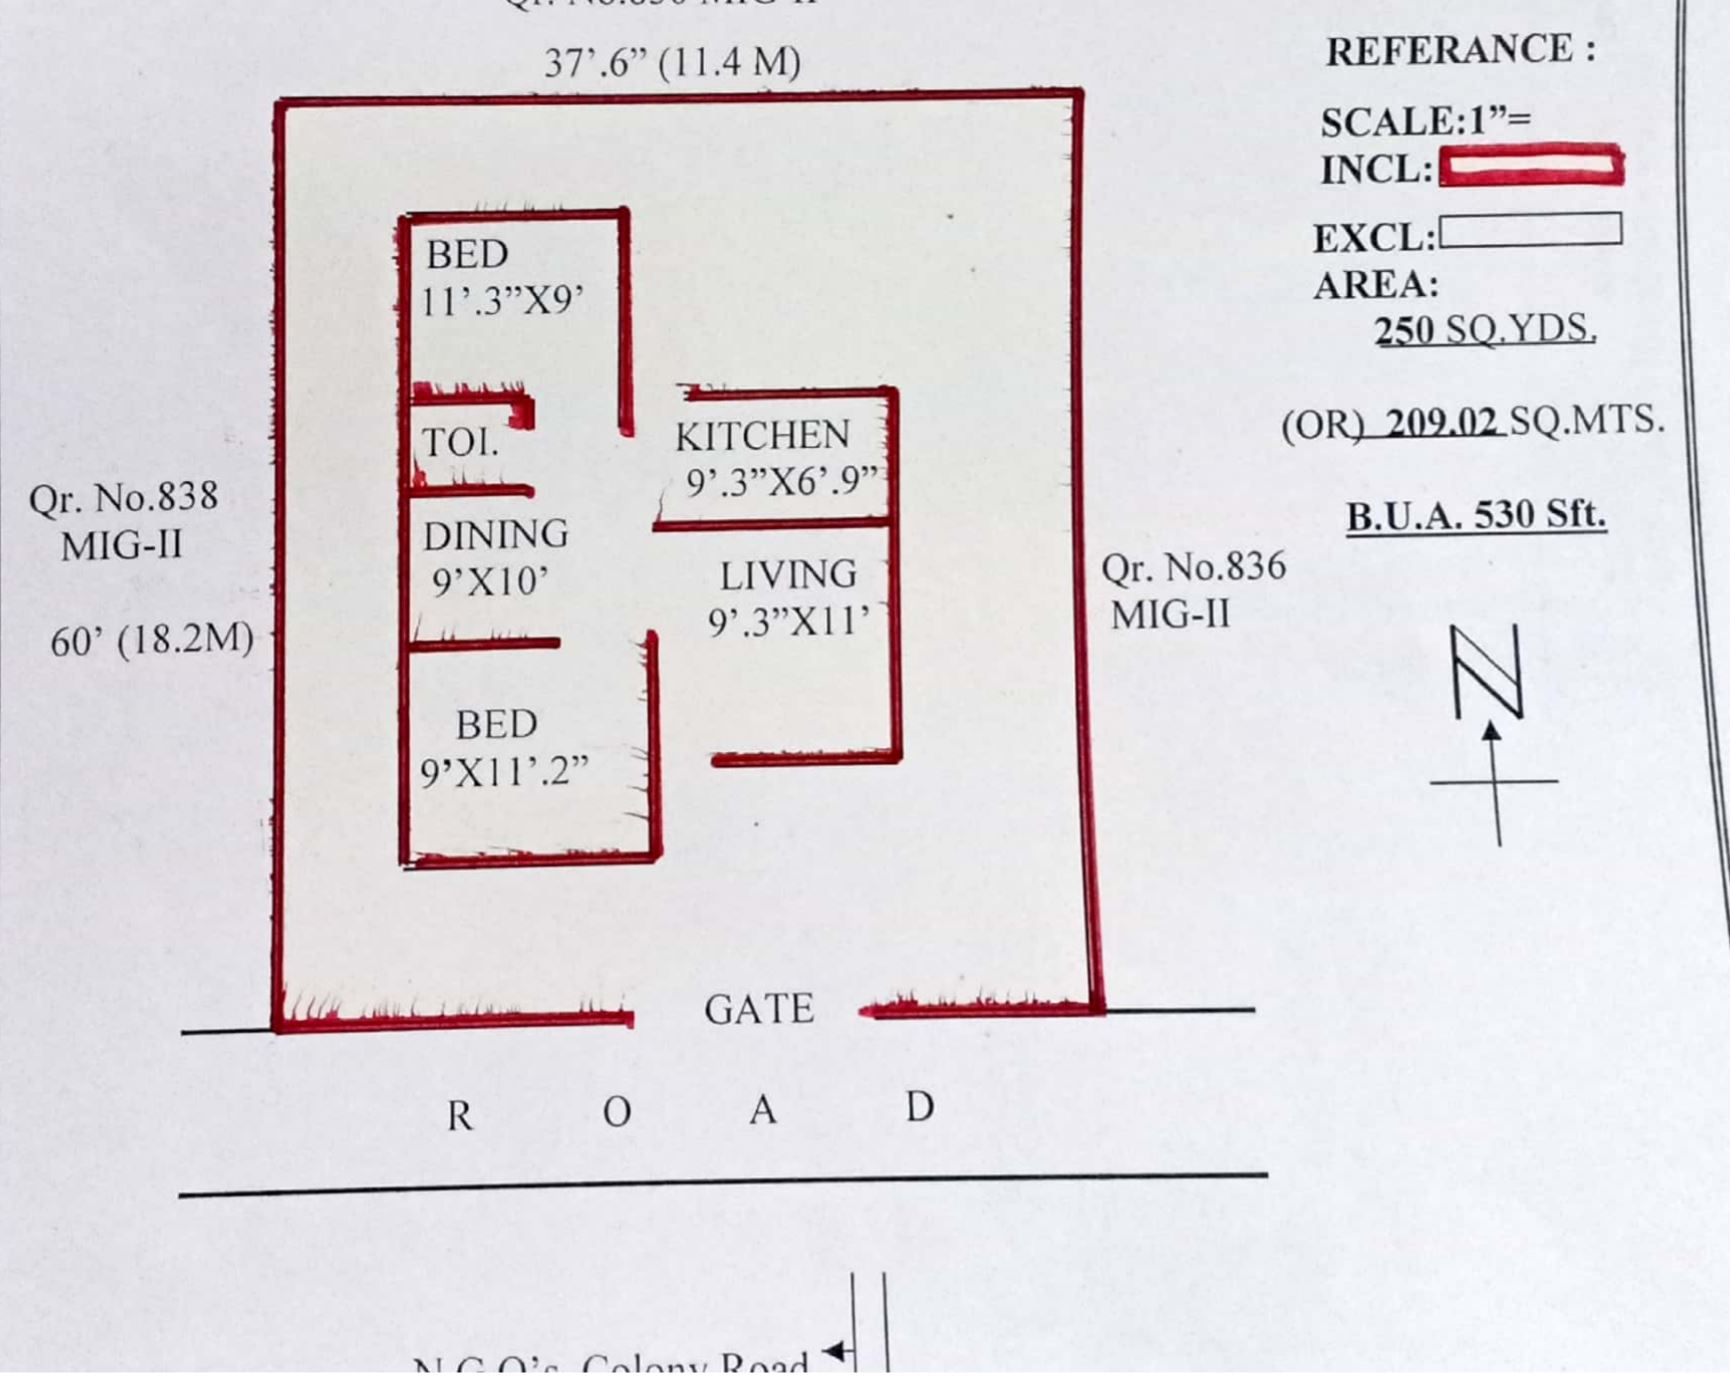 Existing Building Plan